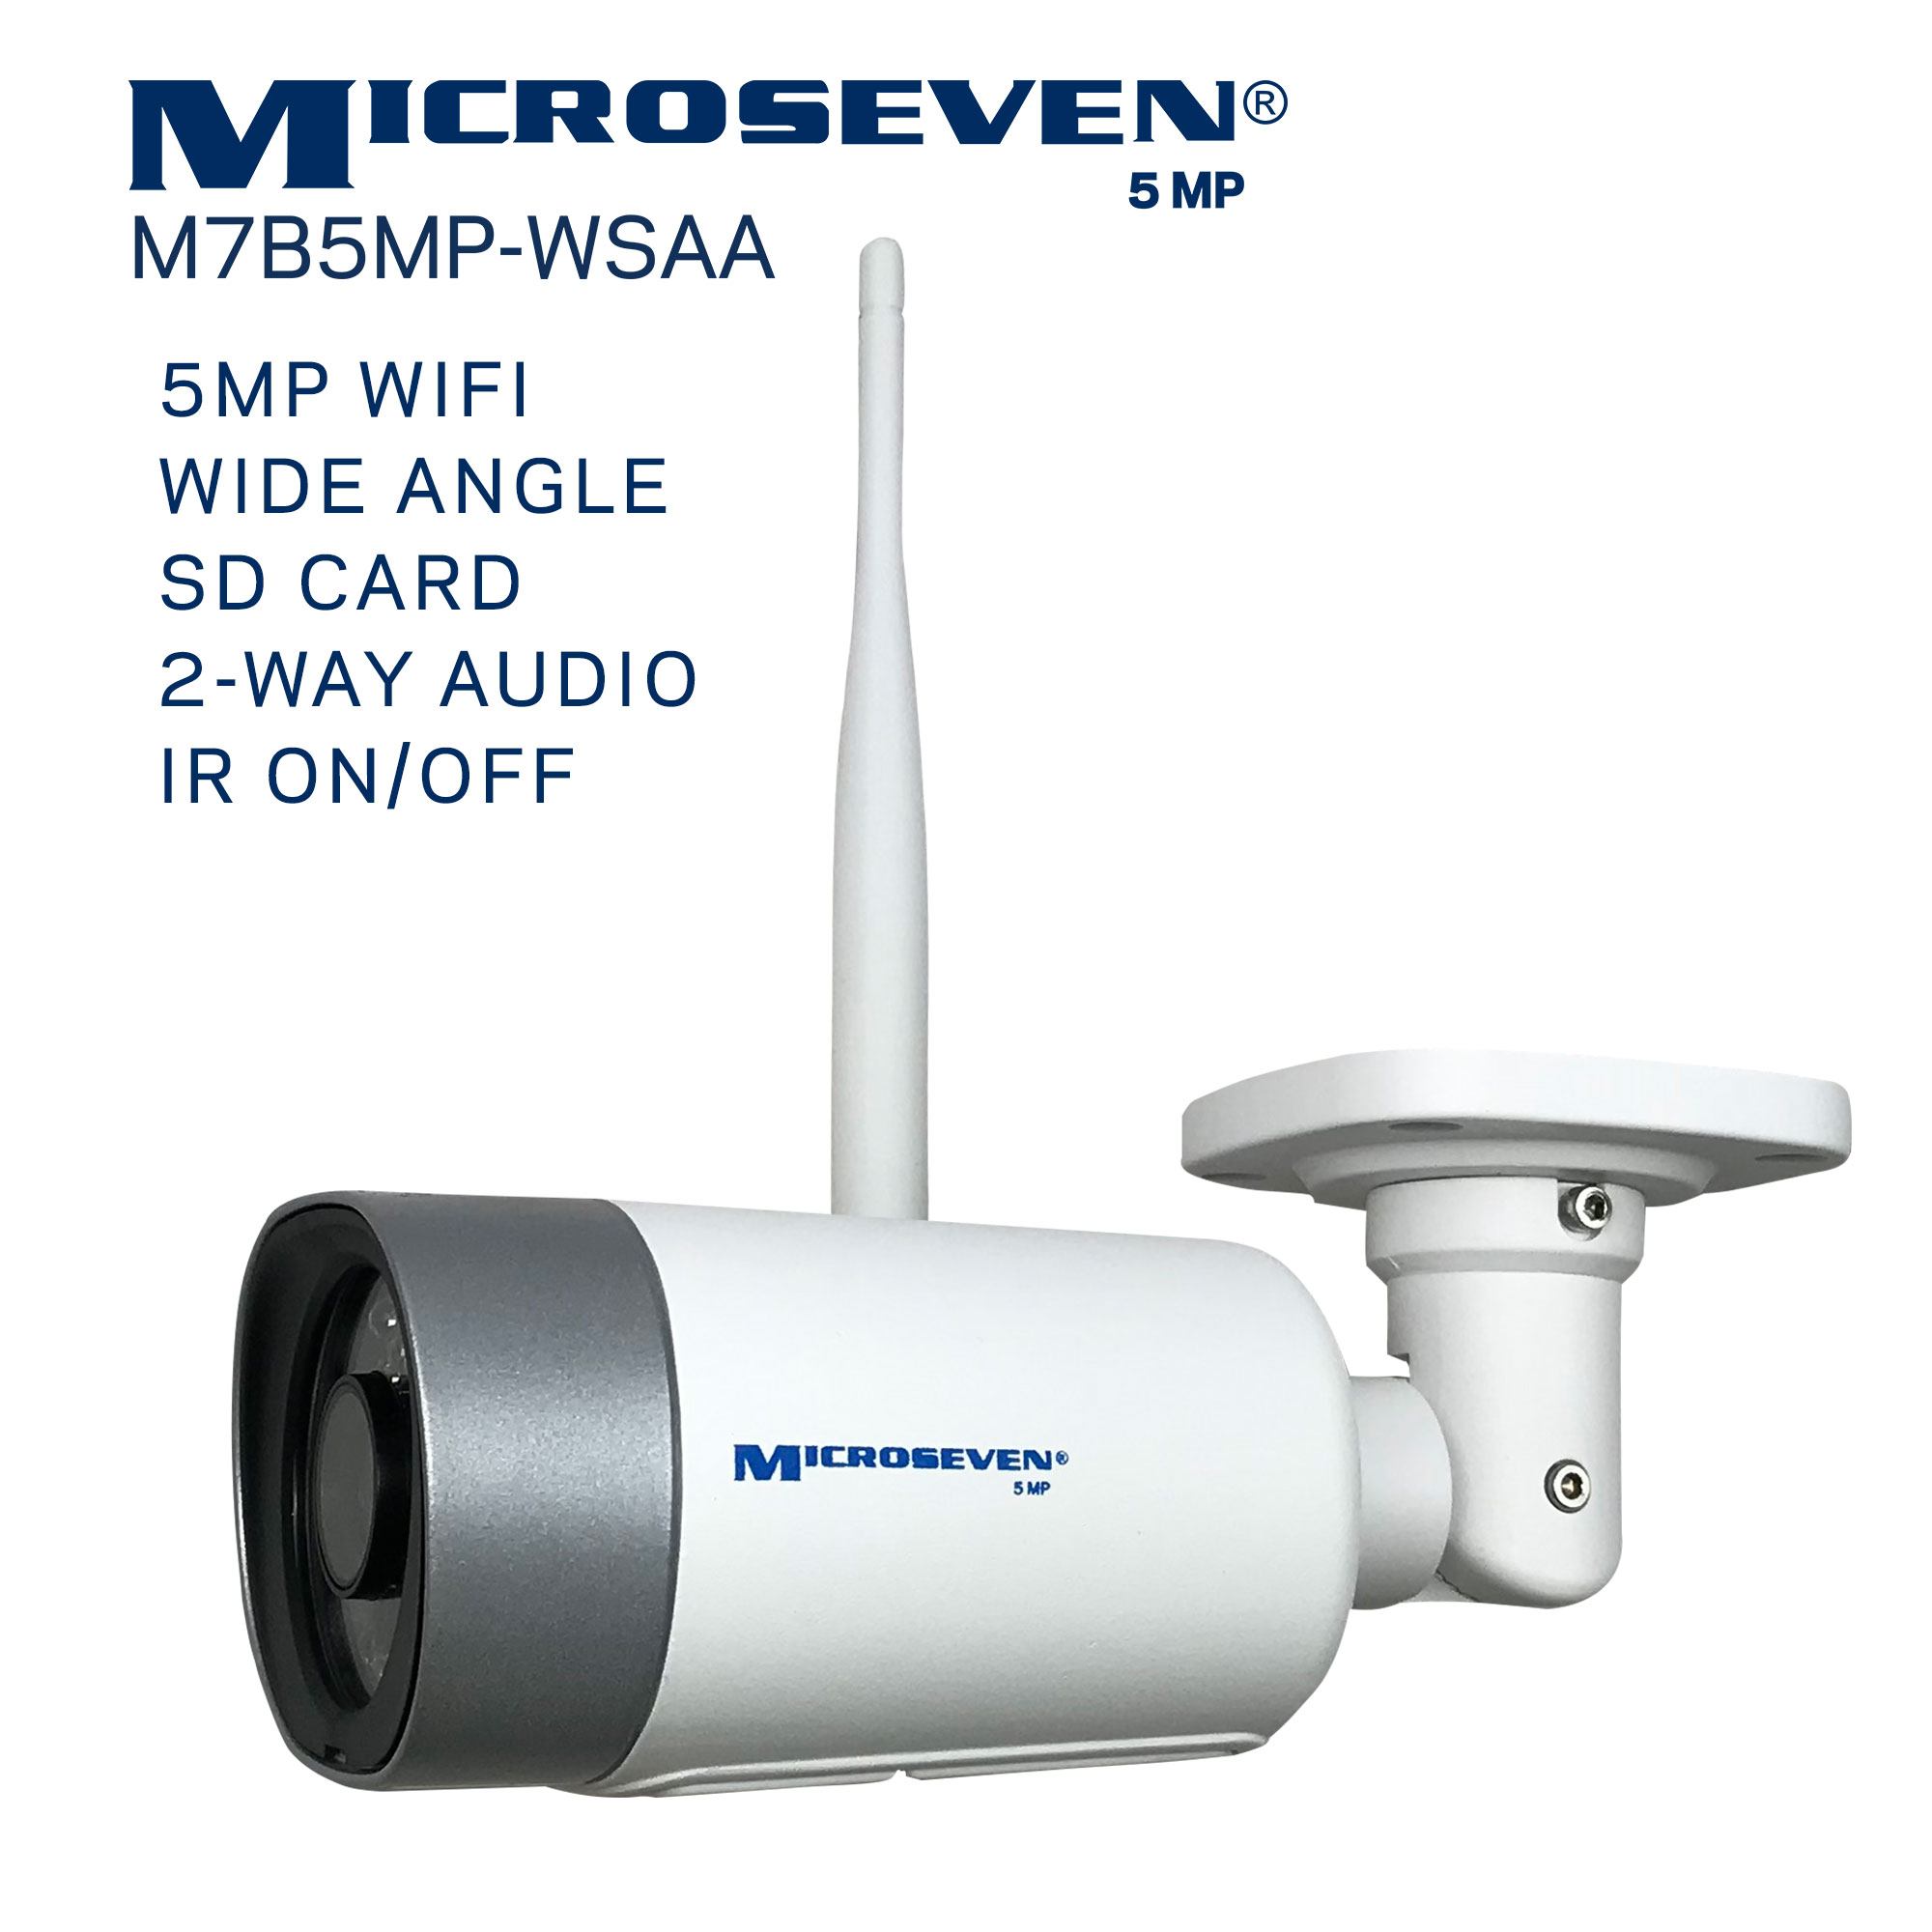 "Microseven (2020)Open Source 5MP (2560x1920) UltraHD [ WiFi ] SONY 1/2.8"" Chipset CMOS 2.8mm 5MP Lens Two-Way Audio with Built-in Amplified Microphone and Speaker plug and Play ONVIF, IR Light (On/Off in the APP) Security Indoor / Outdoor IP Camera, A.I. Human Motion Detection, 128GB SD Slot, Day & Night, Web GUI & Apps, VMS (Video Management System) Free 24hr M7 Cloud Storage, Works with Alexa with No Monthly Fee+ Broadcasting on YouTube, Facebook & Microseven.tv"